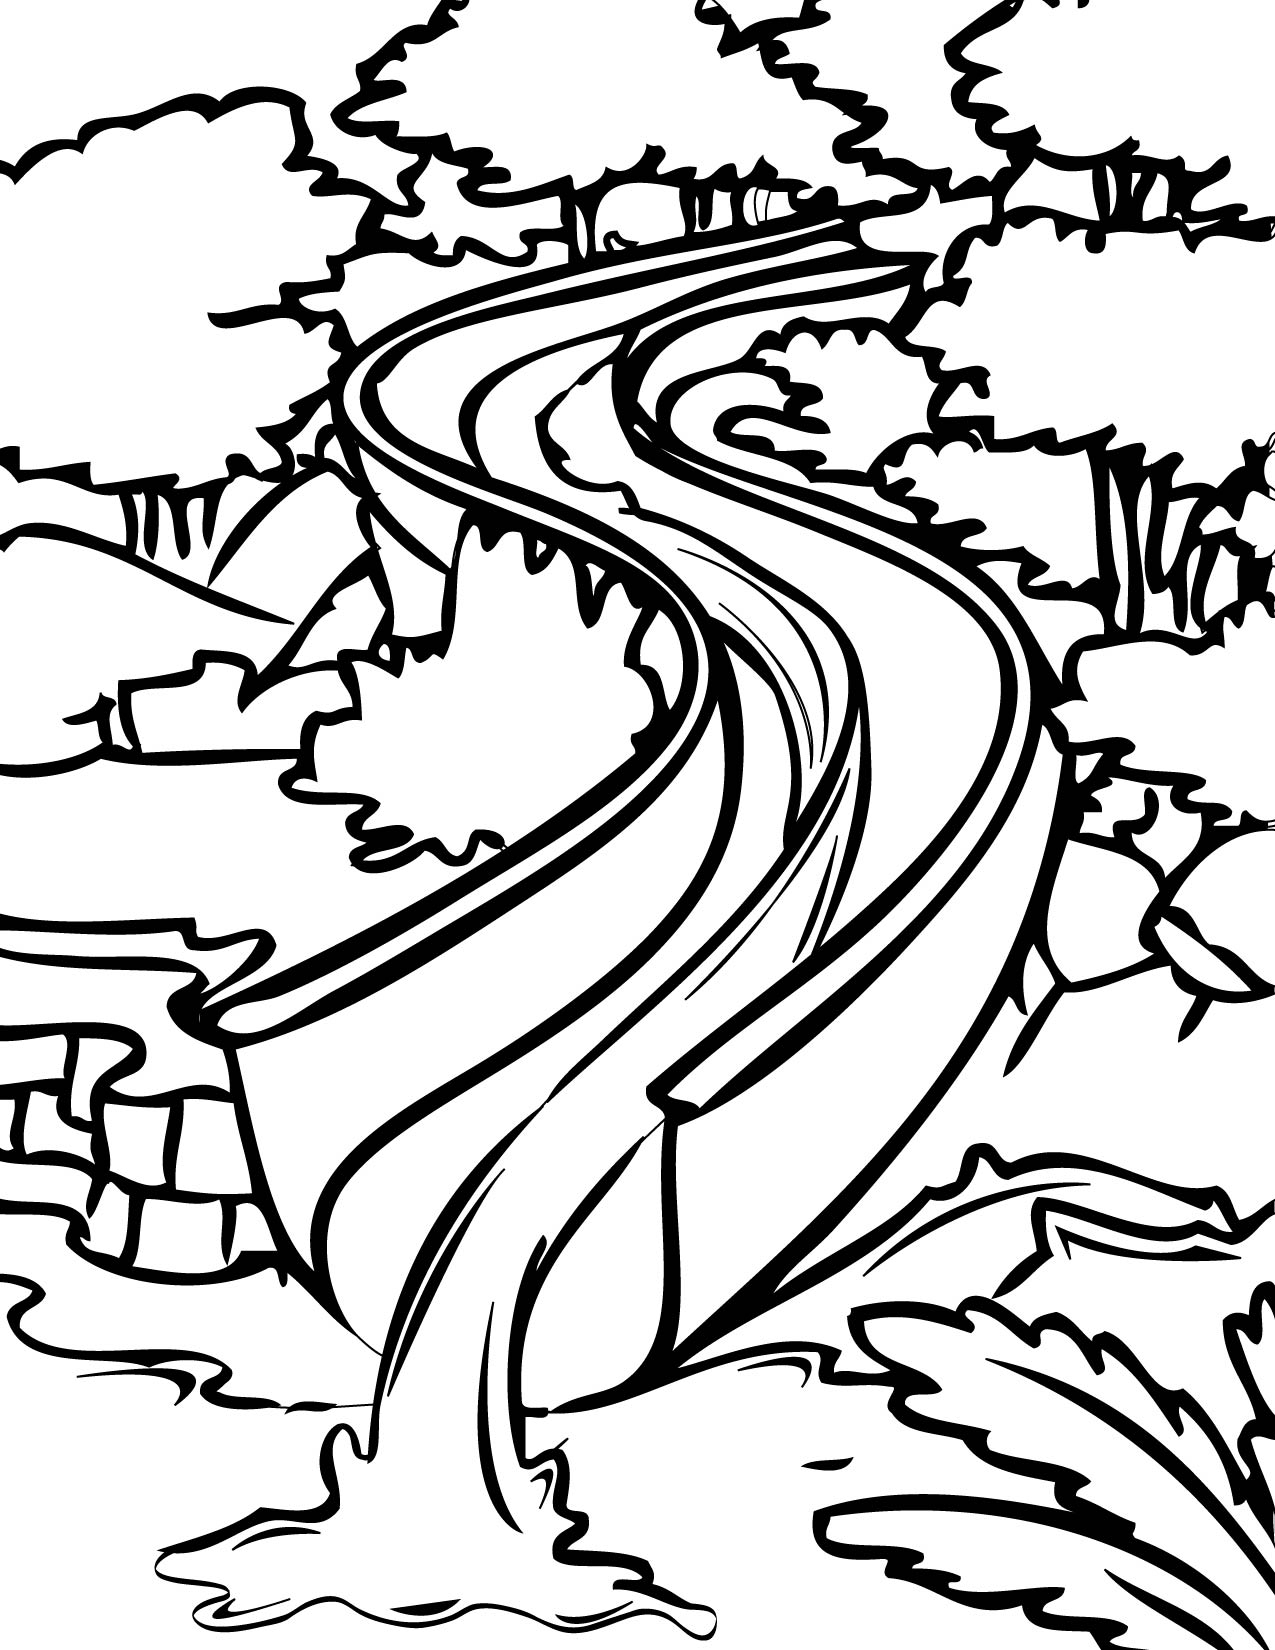 Coloring pages water - Water Slide